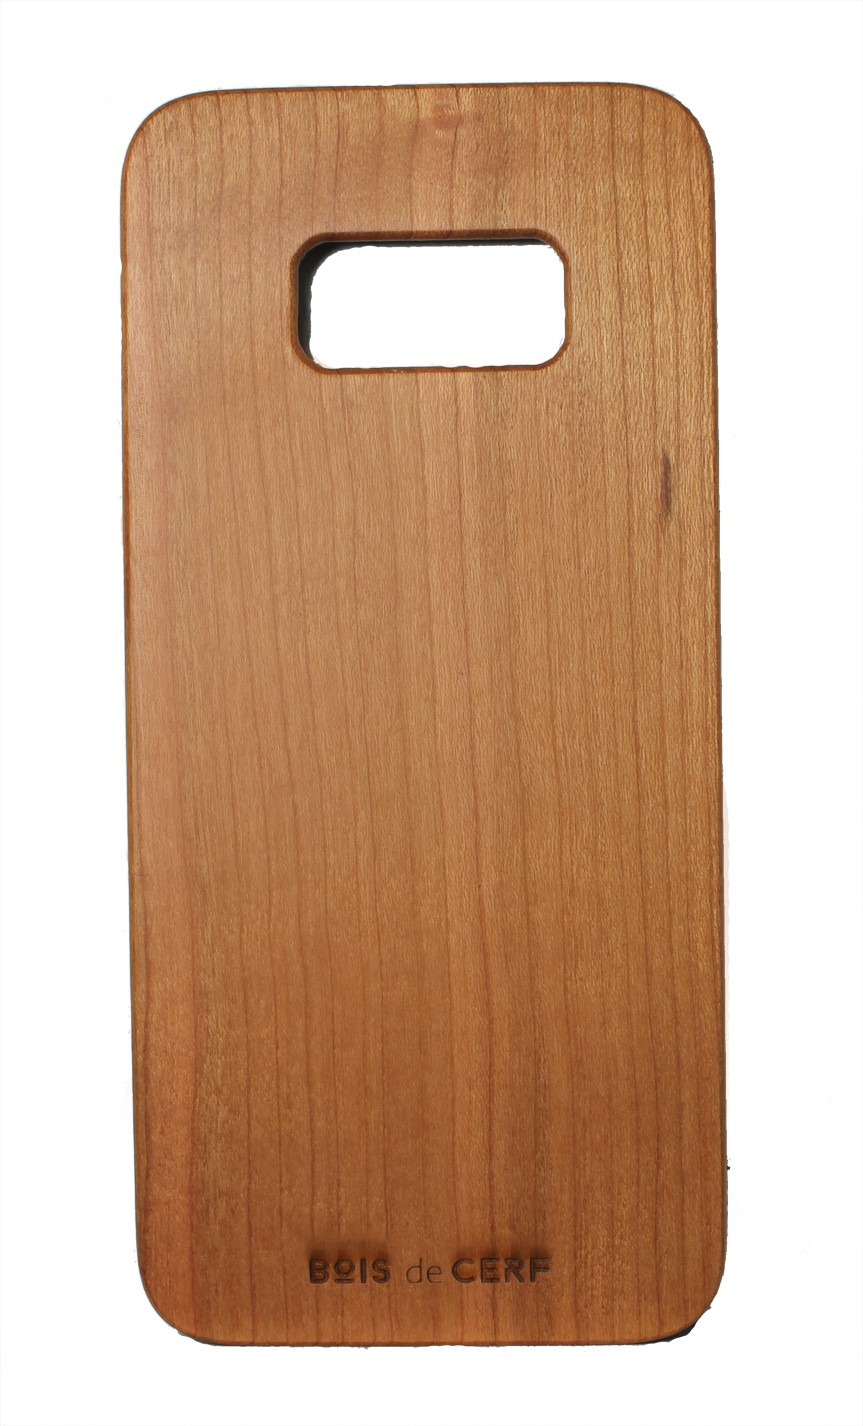 Wooden case Samsung galaxy S8